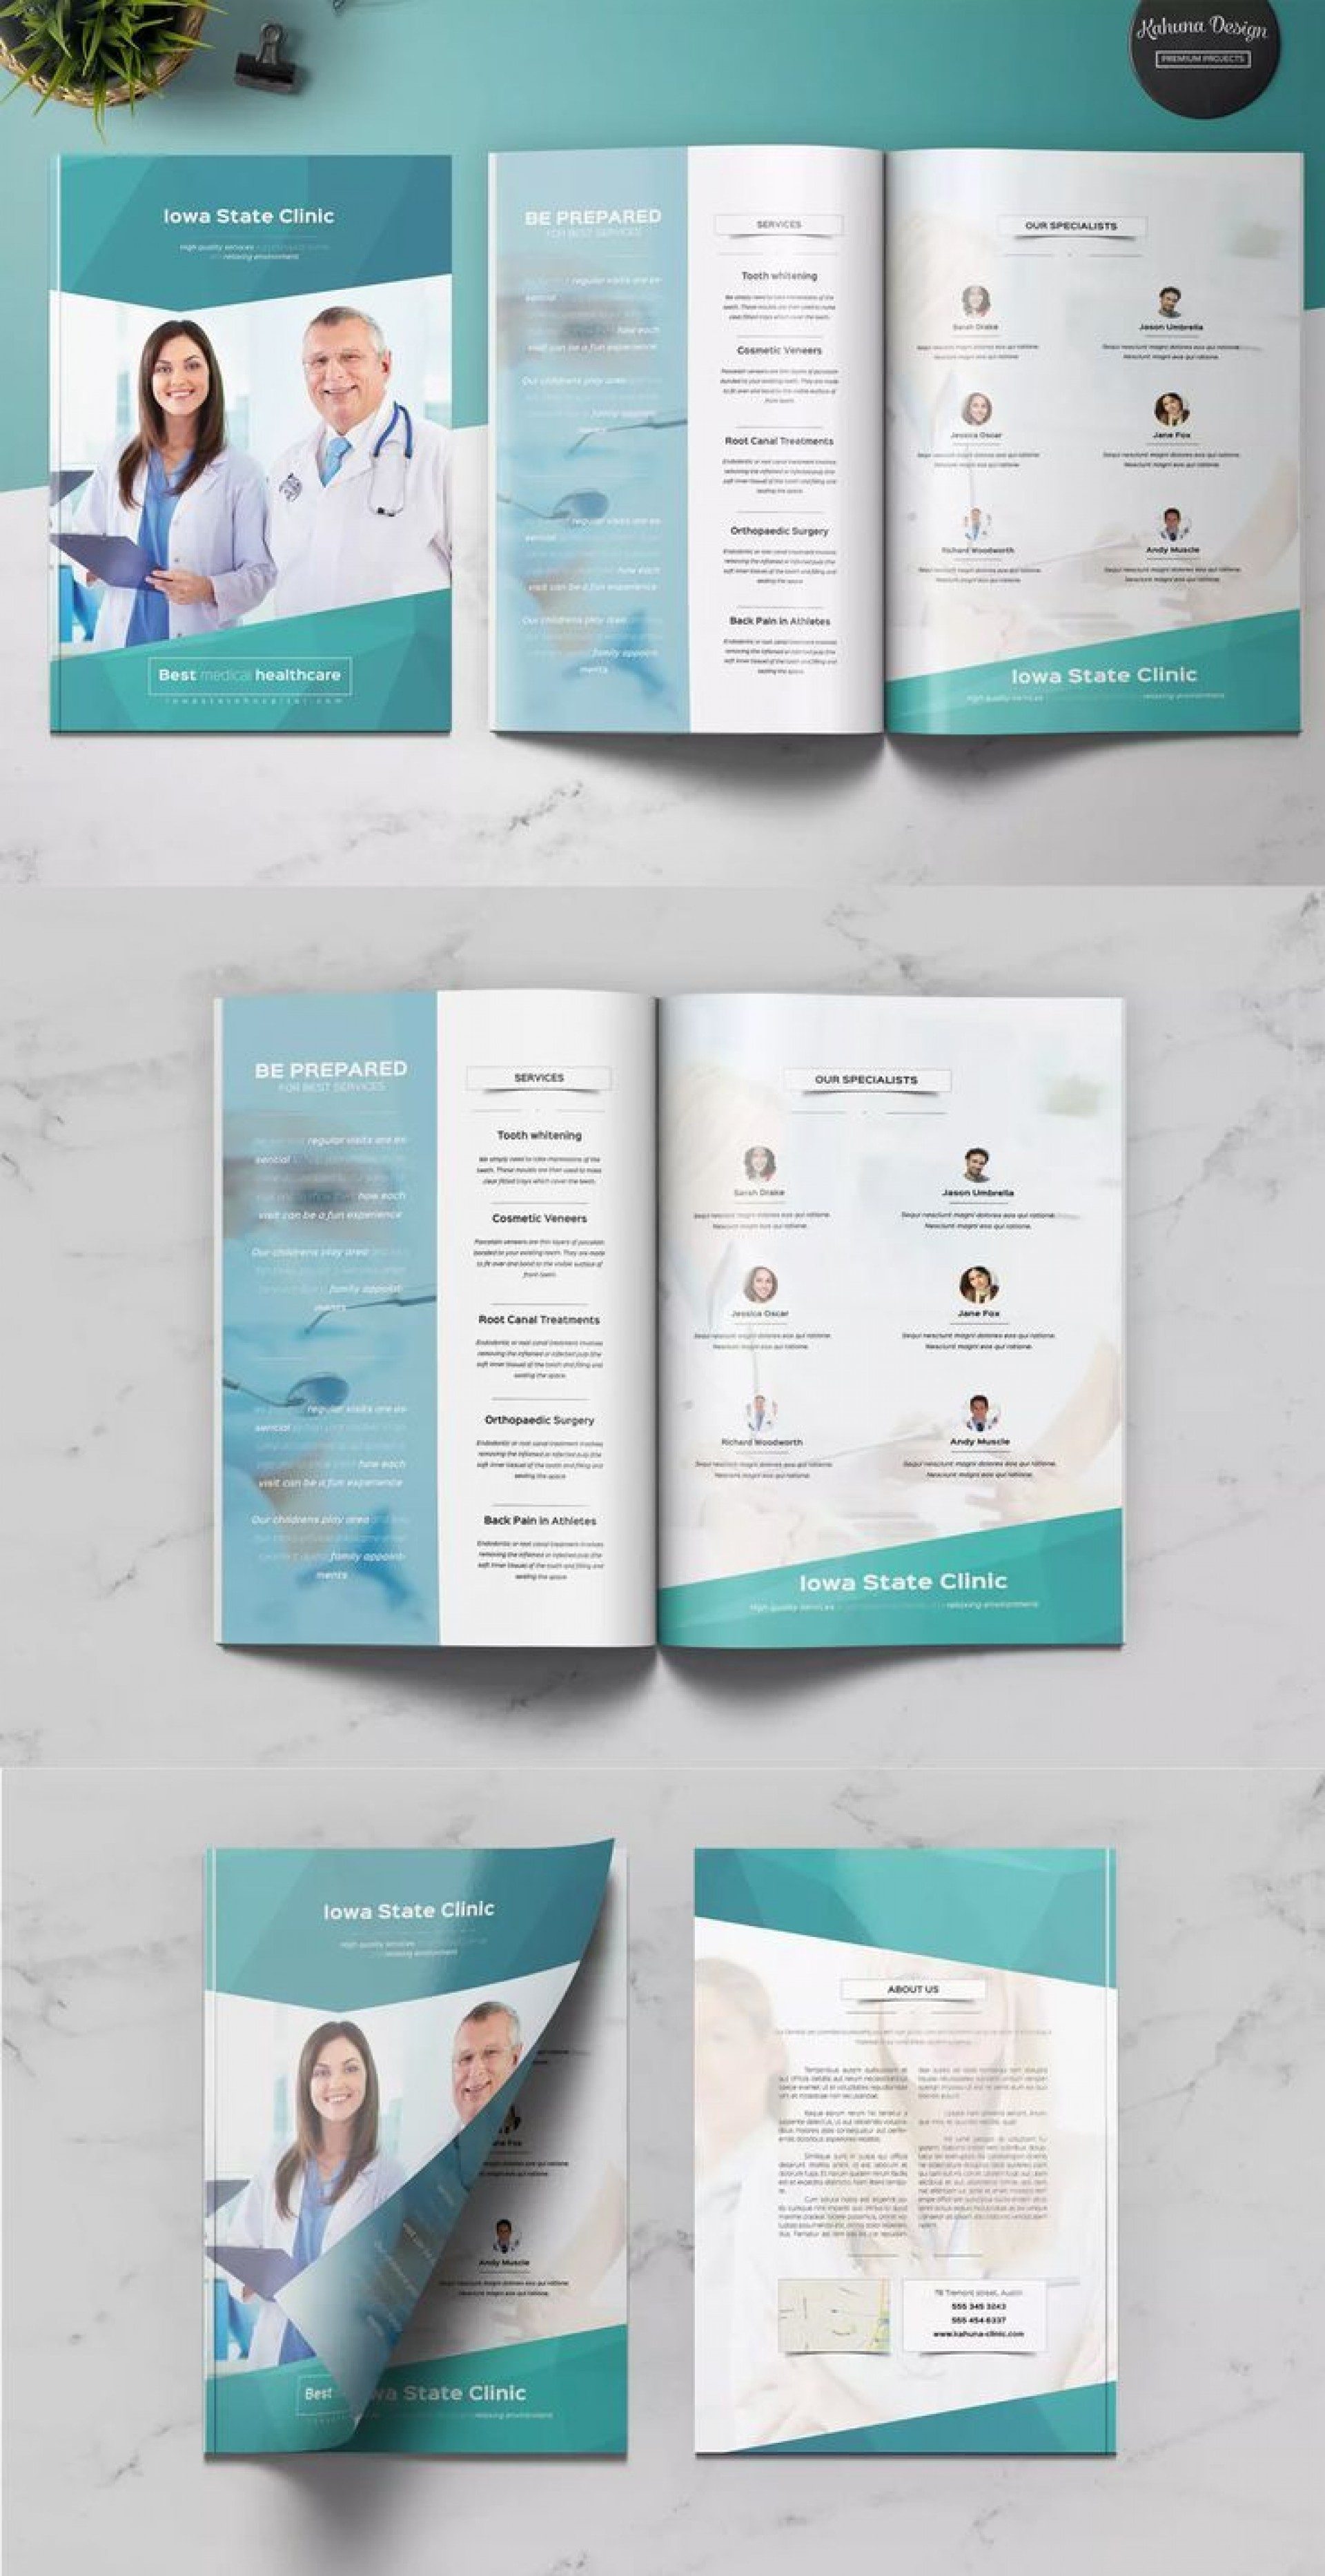 005 Fascinating Download Brochure Template For Word 2007 Highest Clarity 1920